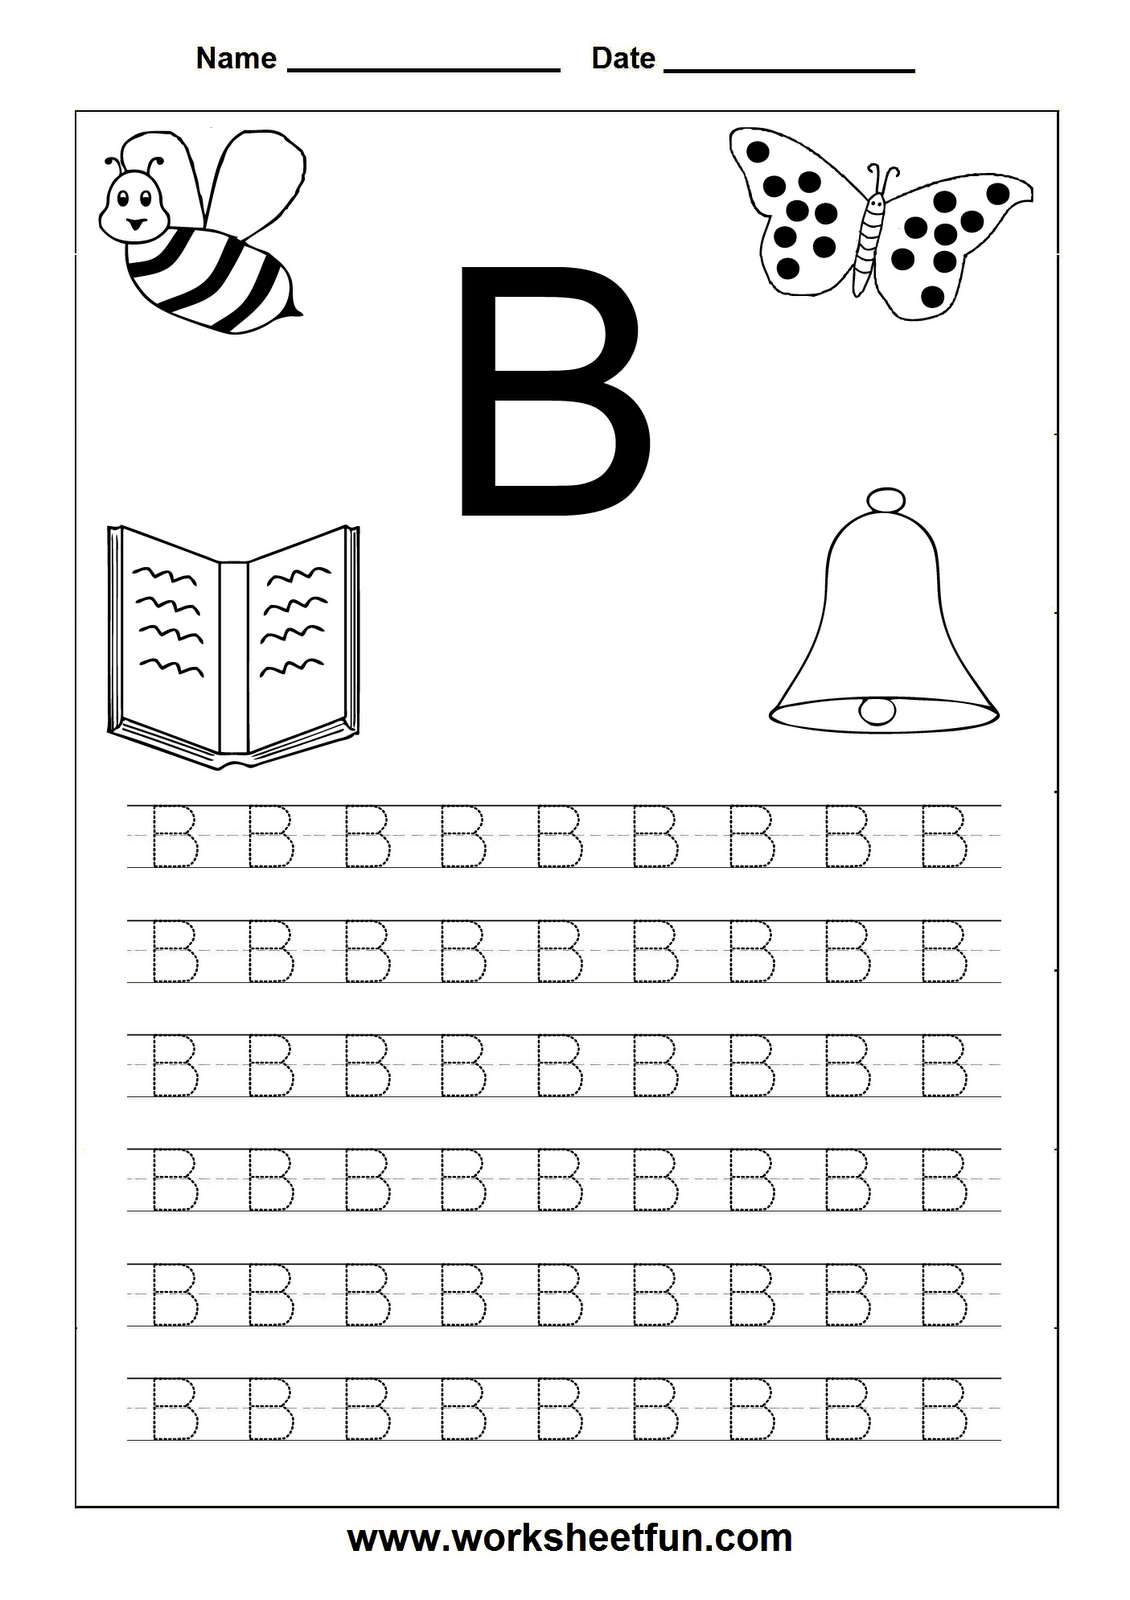 math worksheet : 1000 images about kindergarten worksheets on pinterest  : Kindergarten Printable Worksheets Letters